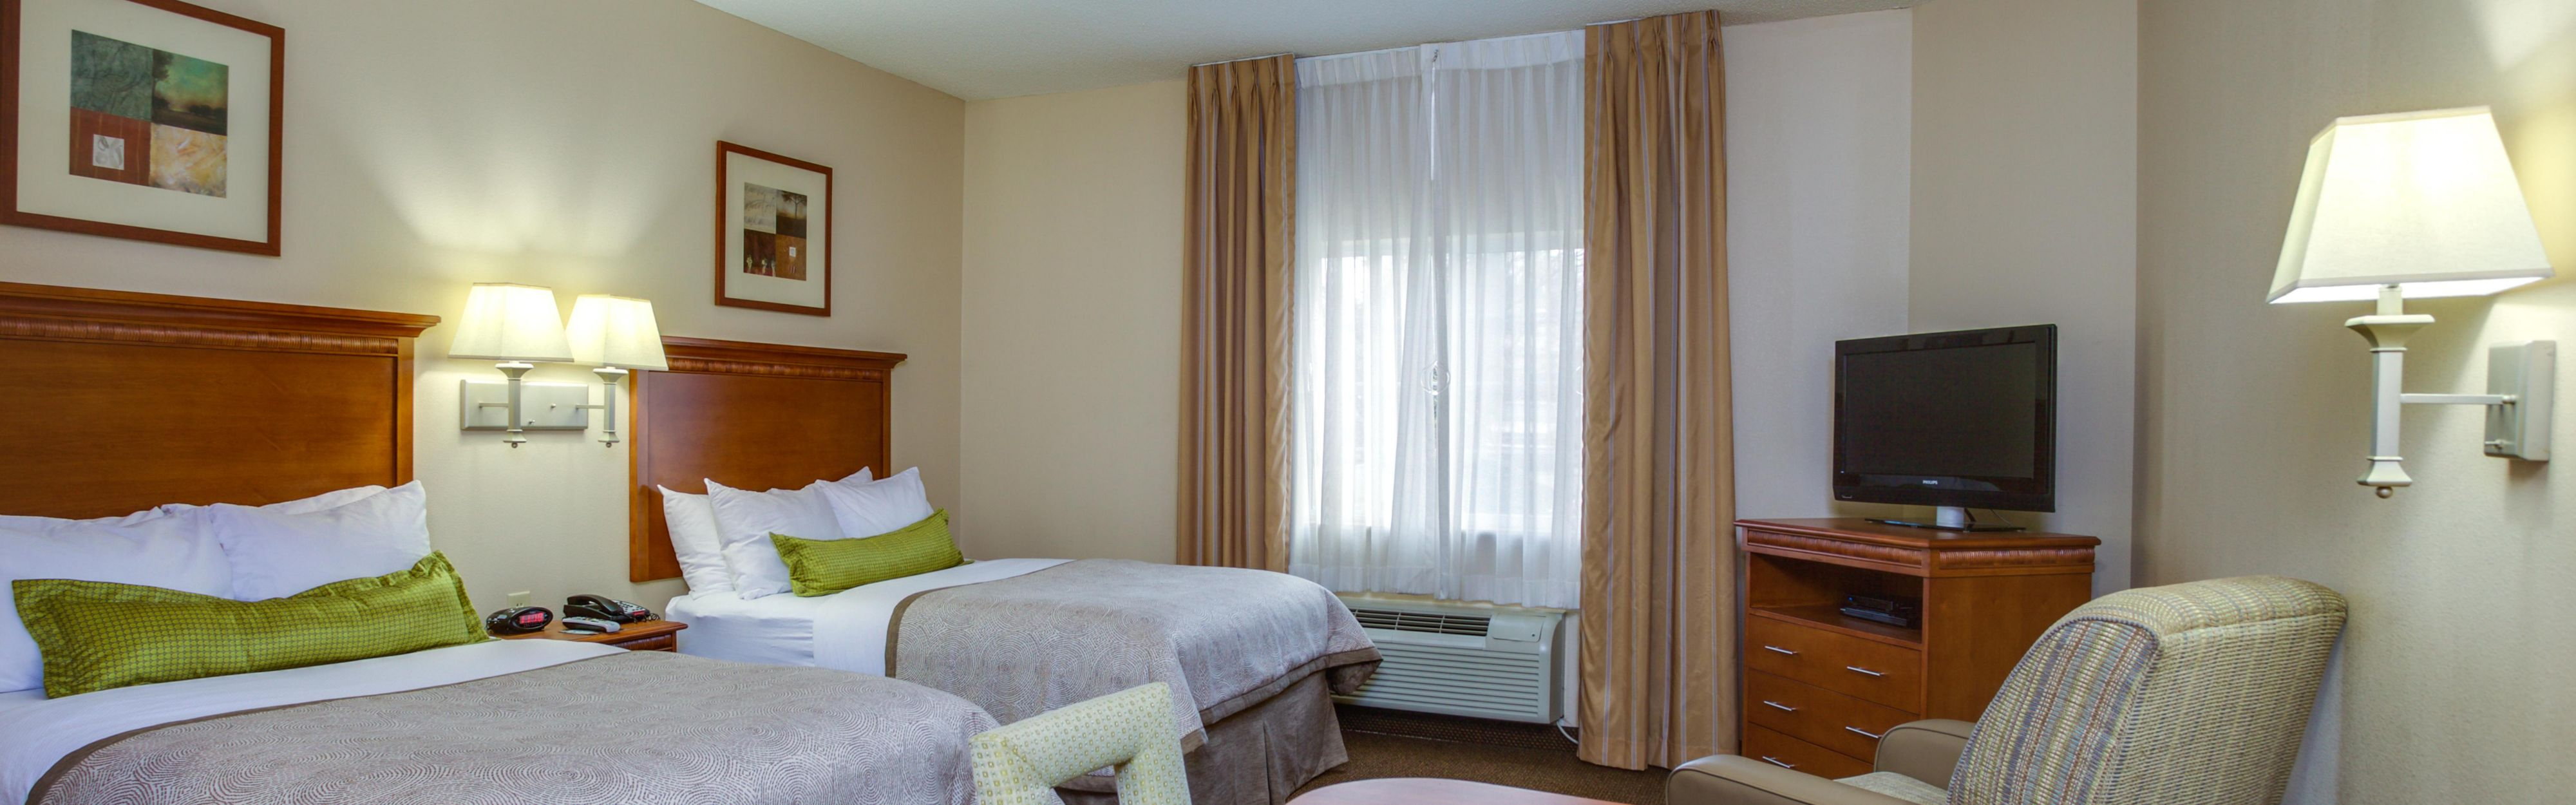 Candlewood Suites Richmond Airport image 1